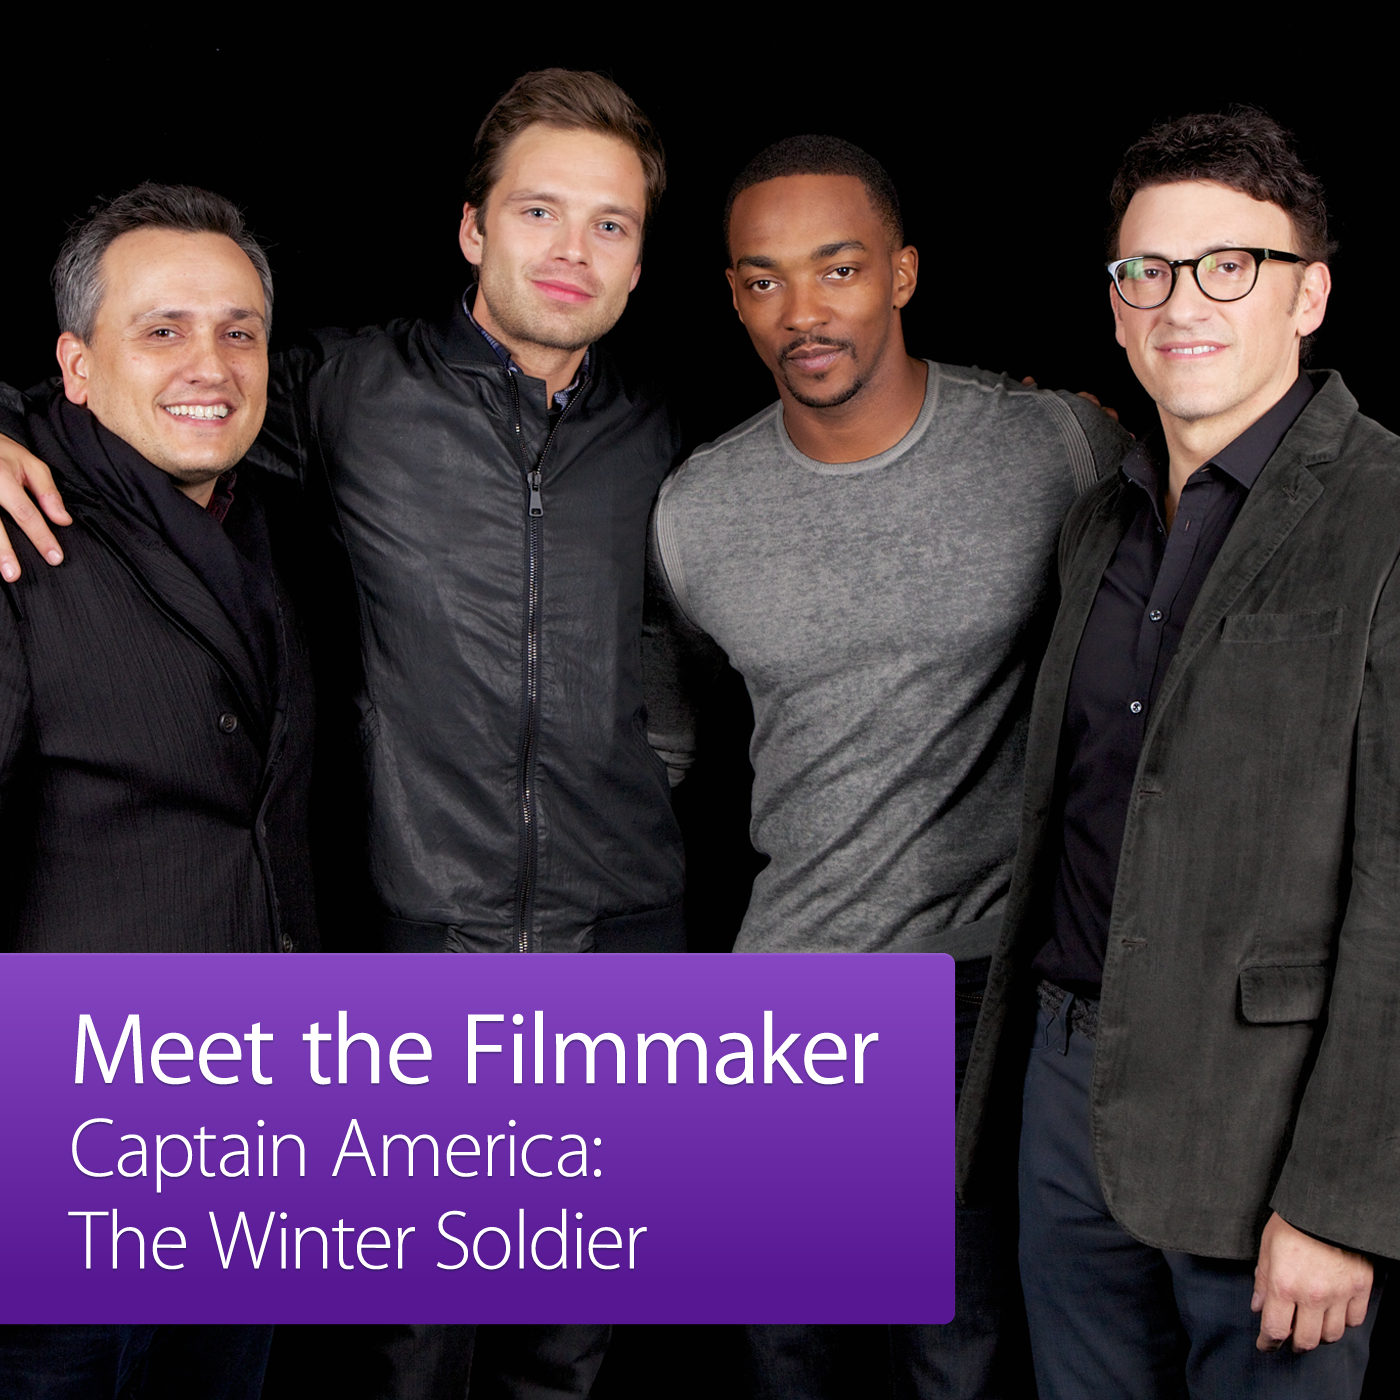 Captain America: The Winter Soldier: Meet the Filmmaker